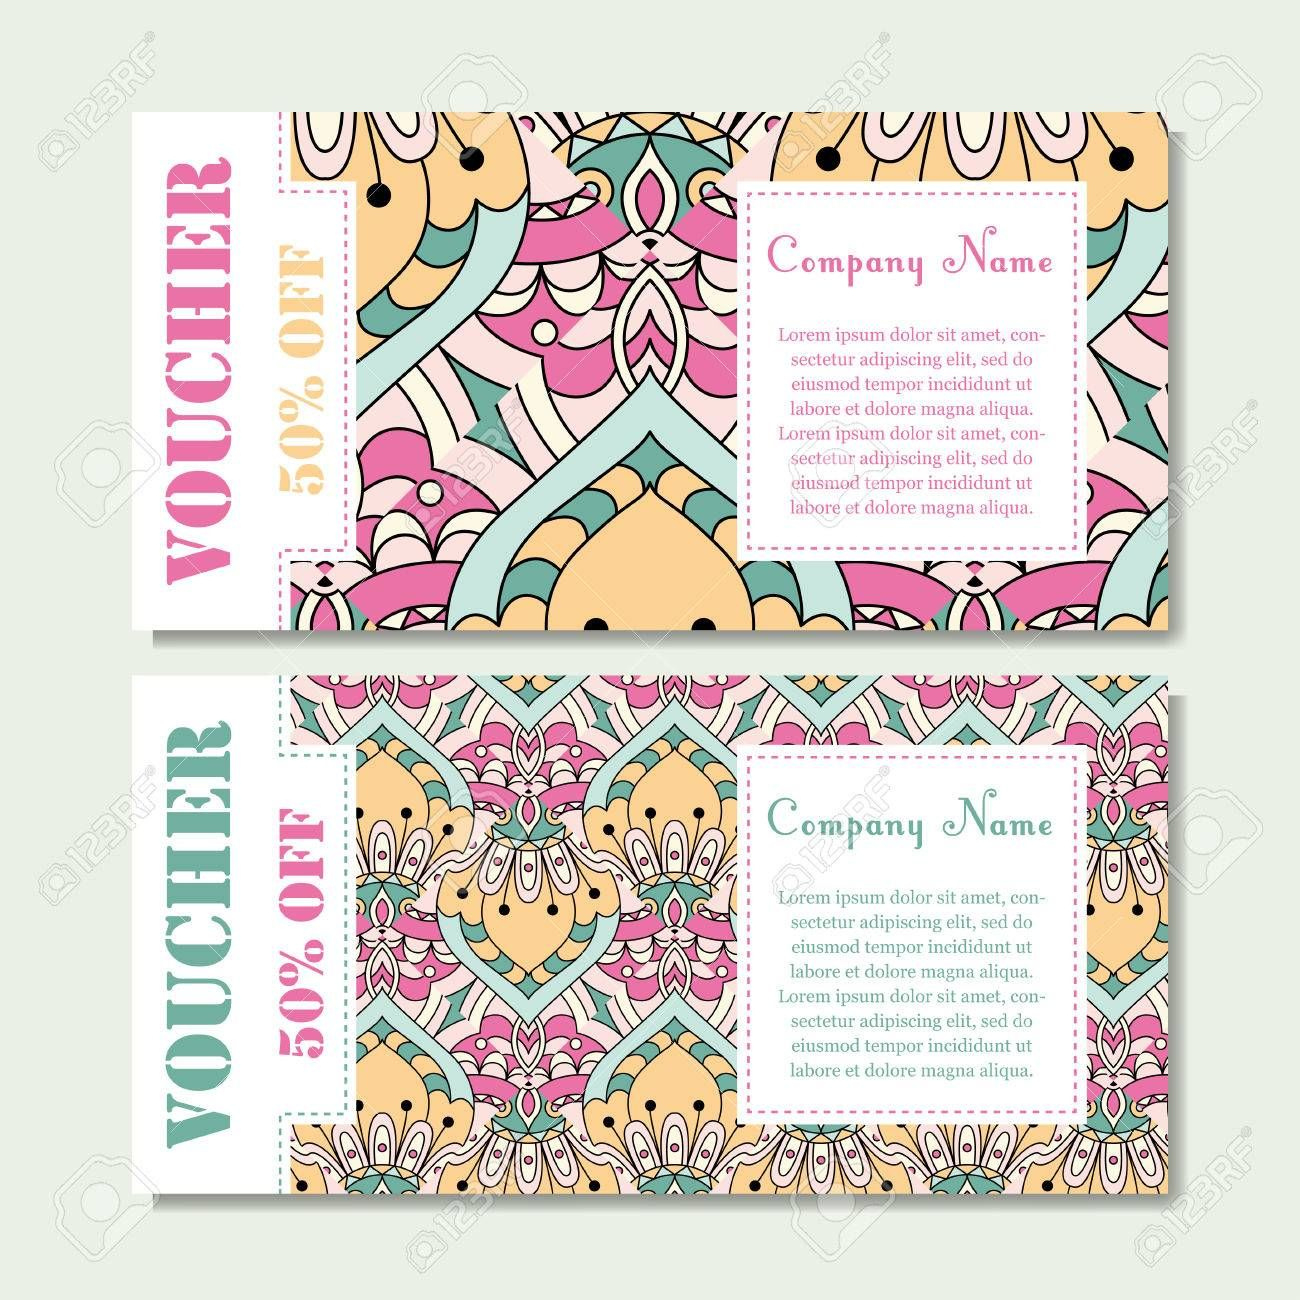 Gift Voucher Template With Mandala Design Certificate For within Magazine Subscription Gift Certificate Template